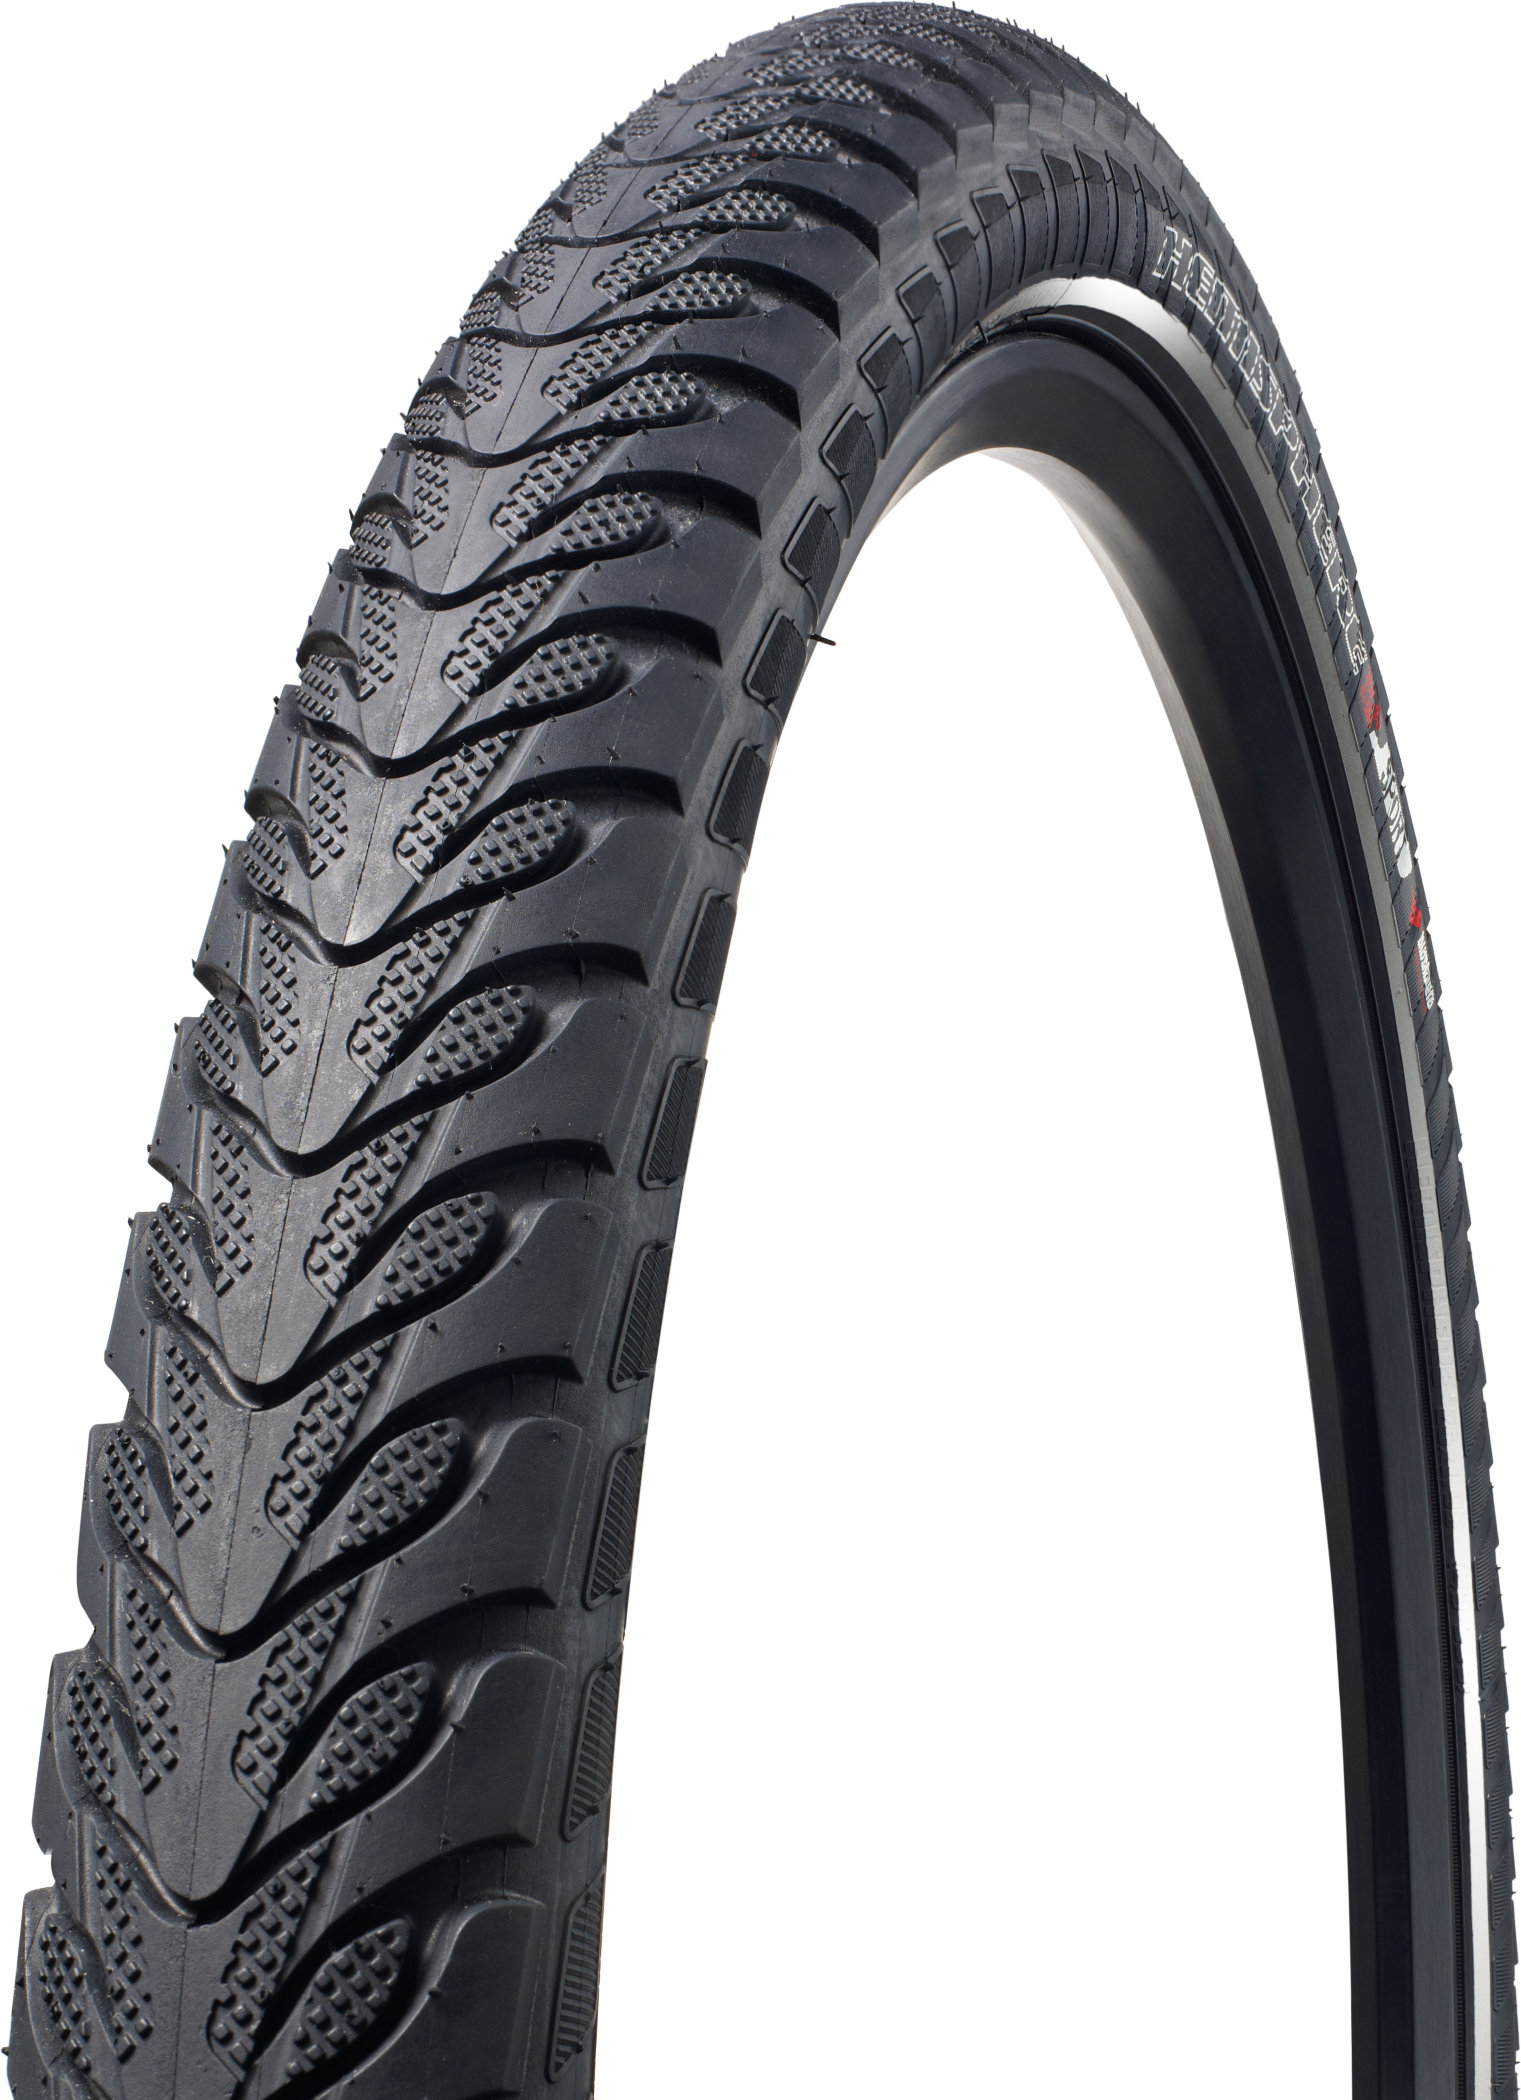 SPECIALIZED HEMISPHERE SPORT REFLECT TIRE 26X1.95 - Alpha Bikes